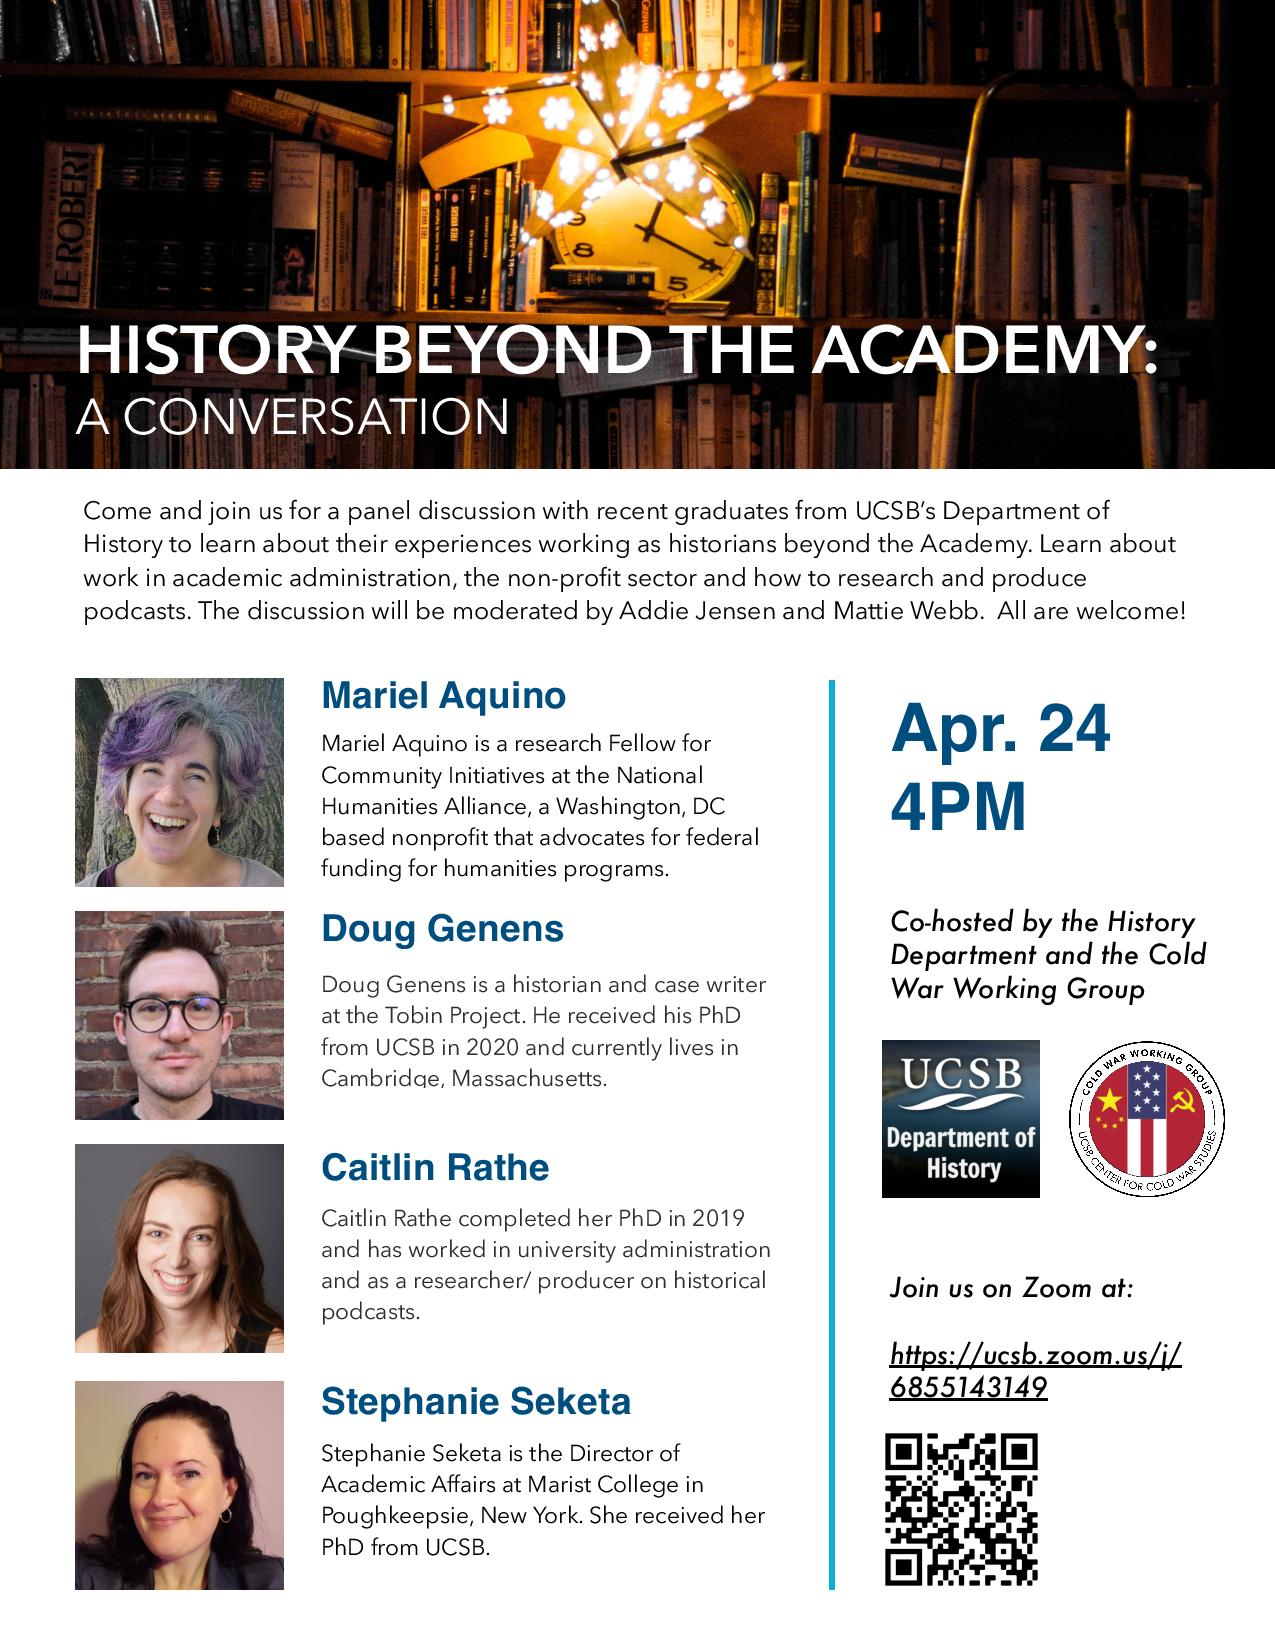 FLyer for Zoom talk for History Beyond the Academy: A Conversation on 4/24/21 at 4PM